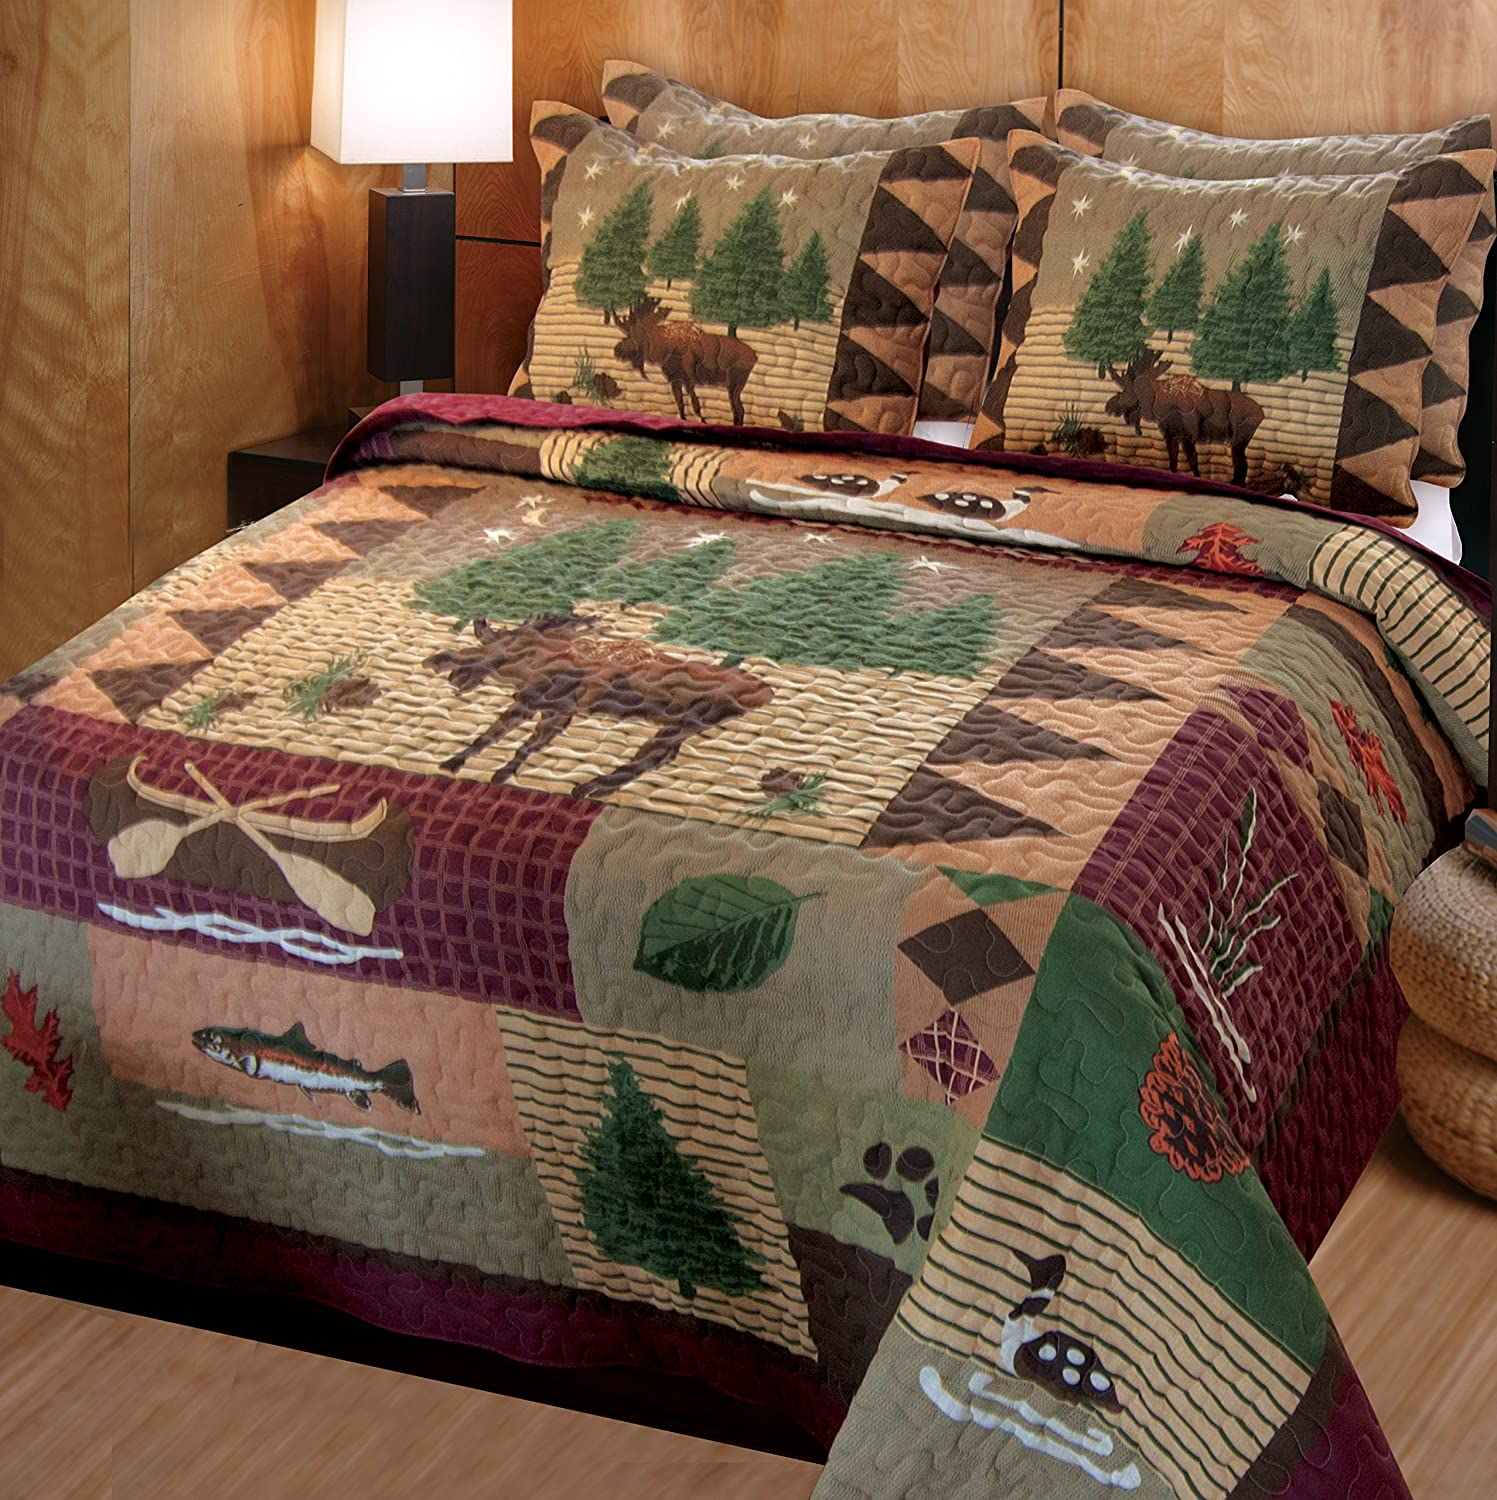 wagner set comforters chocolate p croscill by bedding plaid comforter rustic